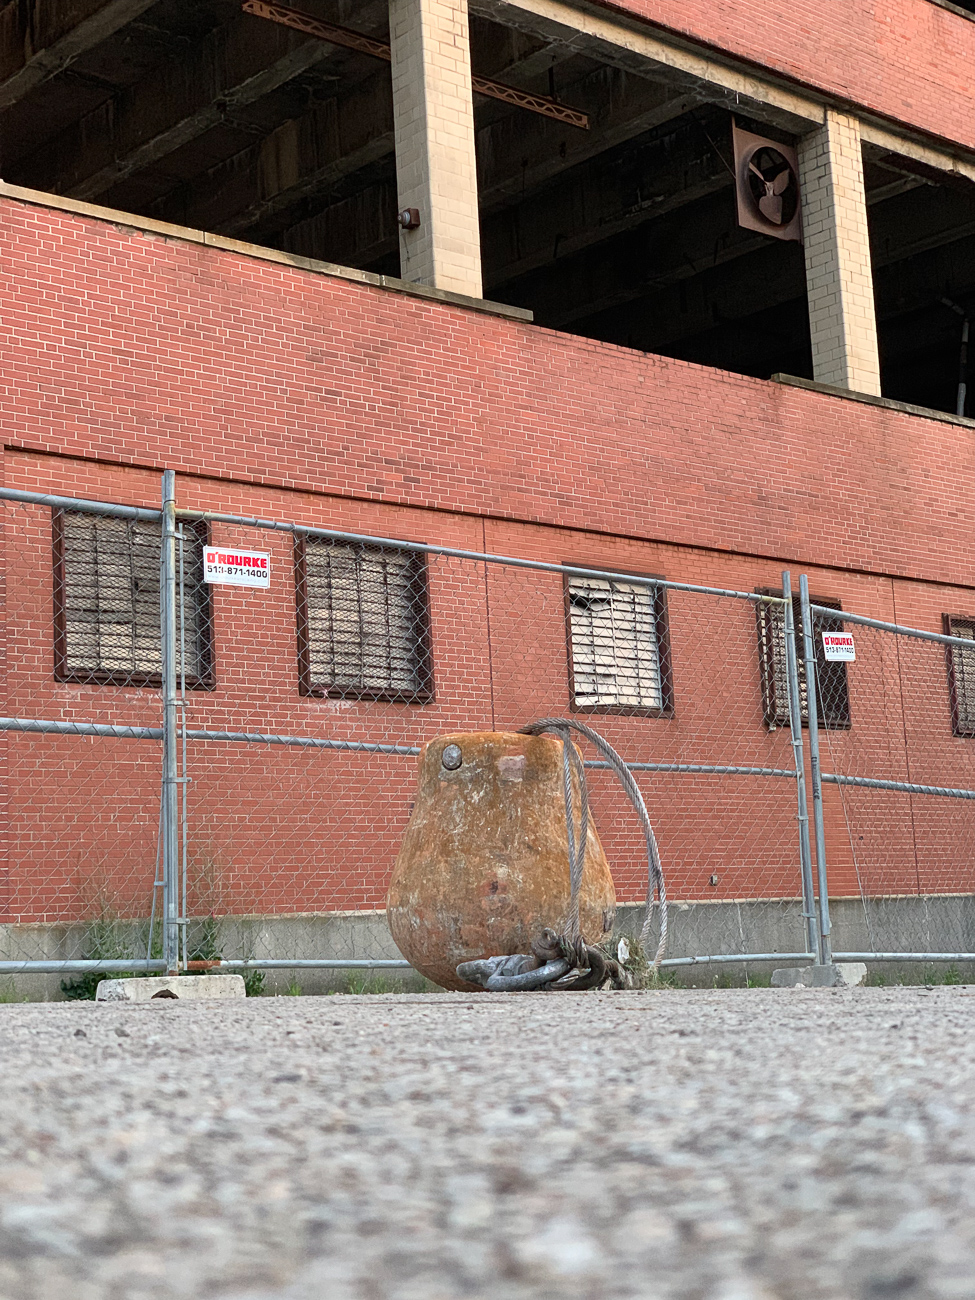 The wrecking ball sits on the pavement outside of the building. / Image: Phil Armstrong // Published: 6.14.19